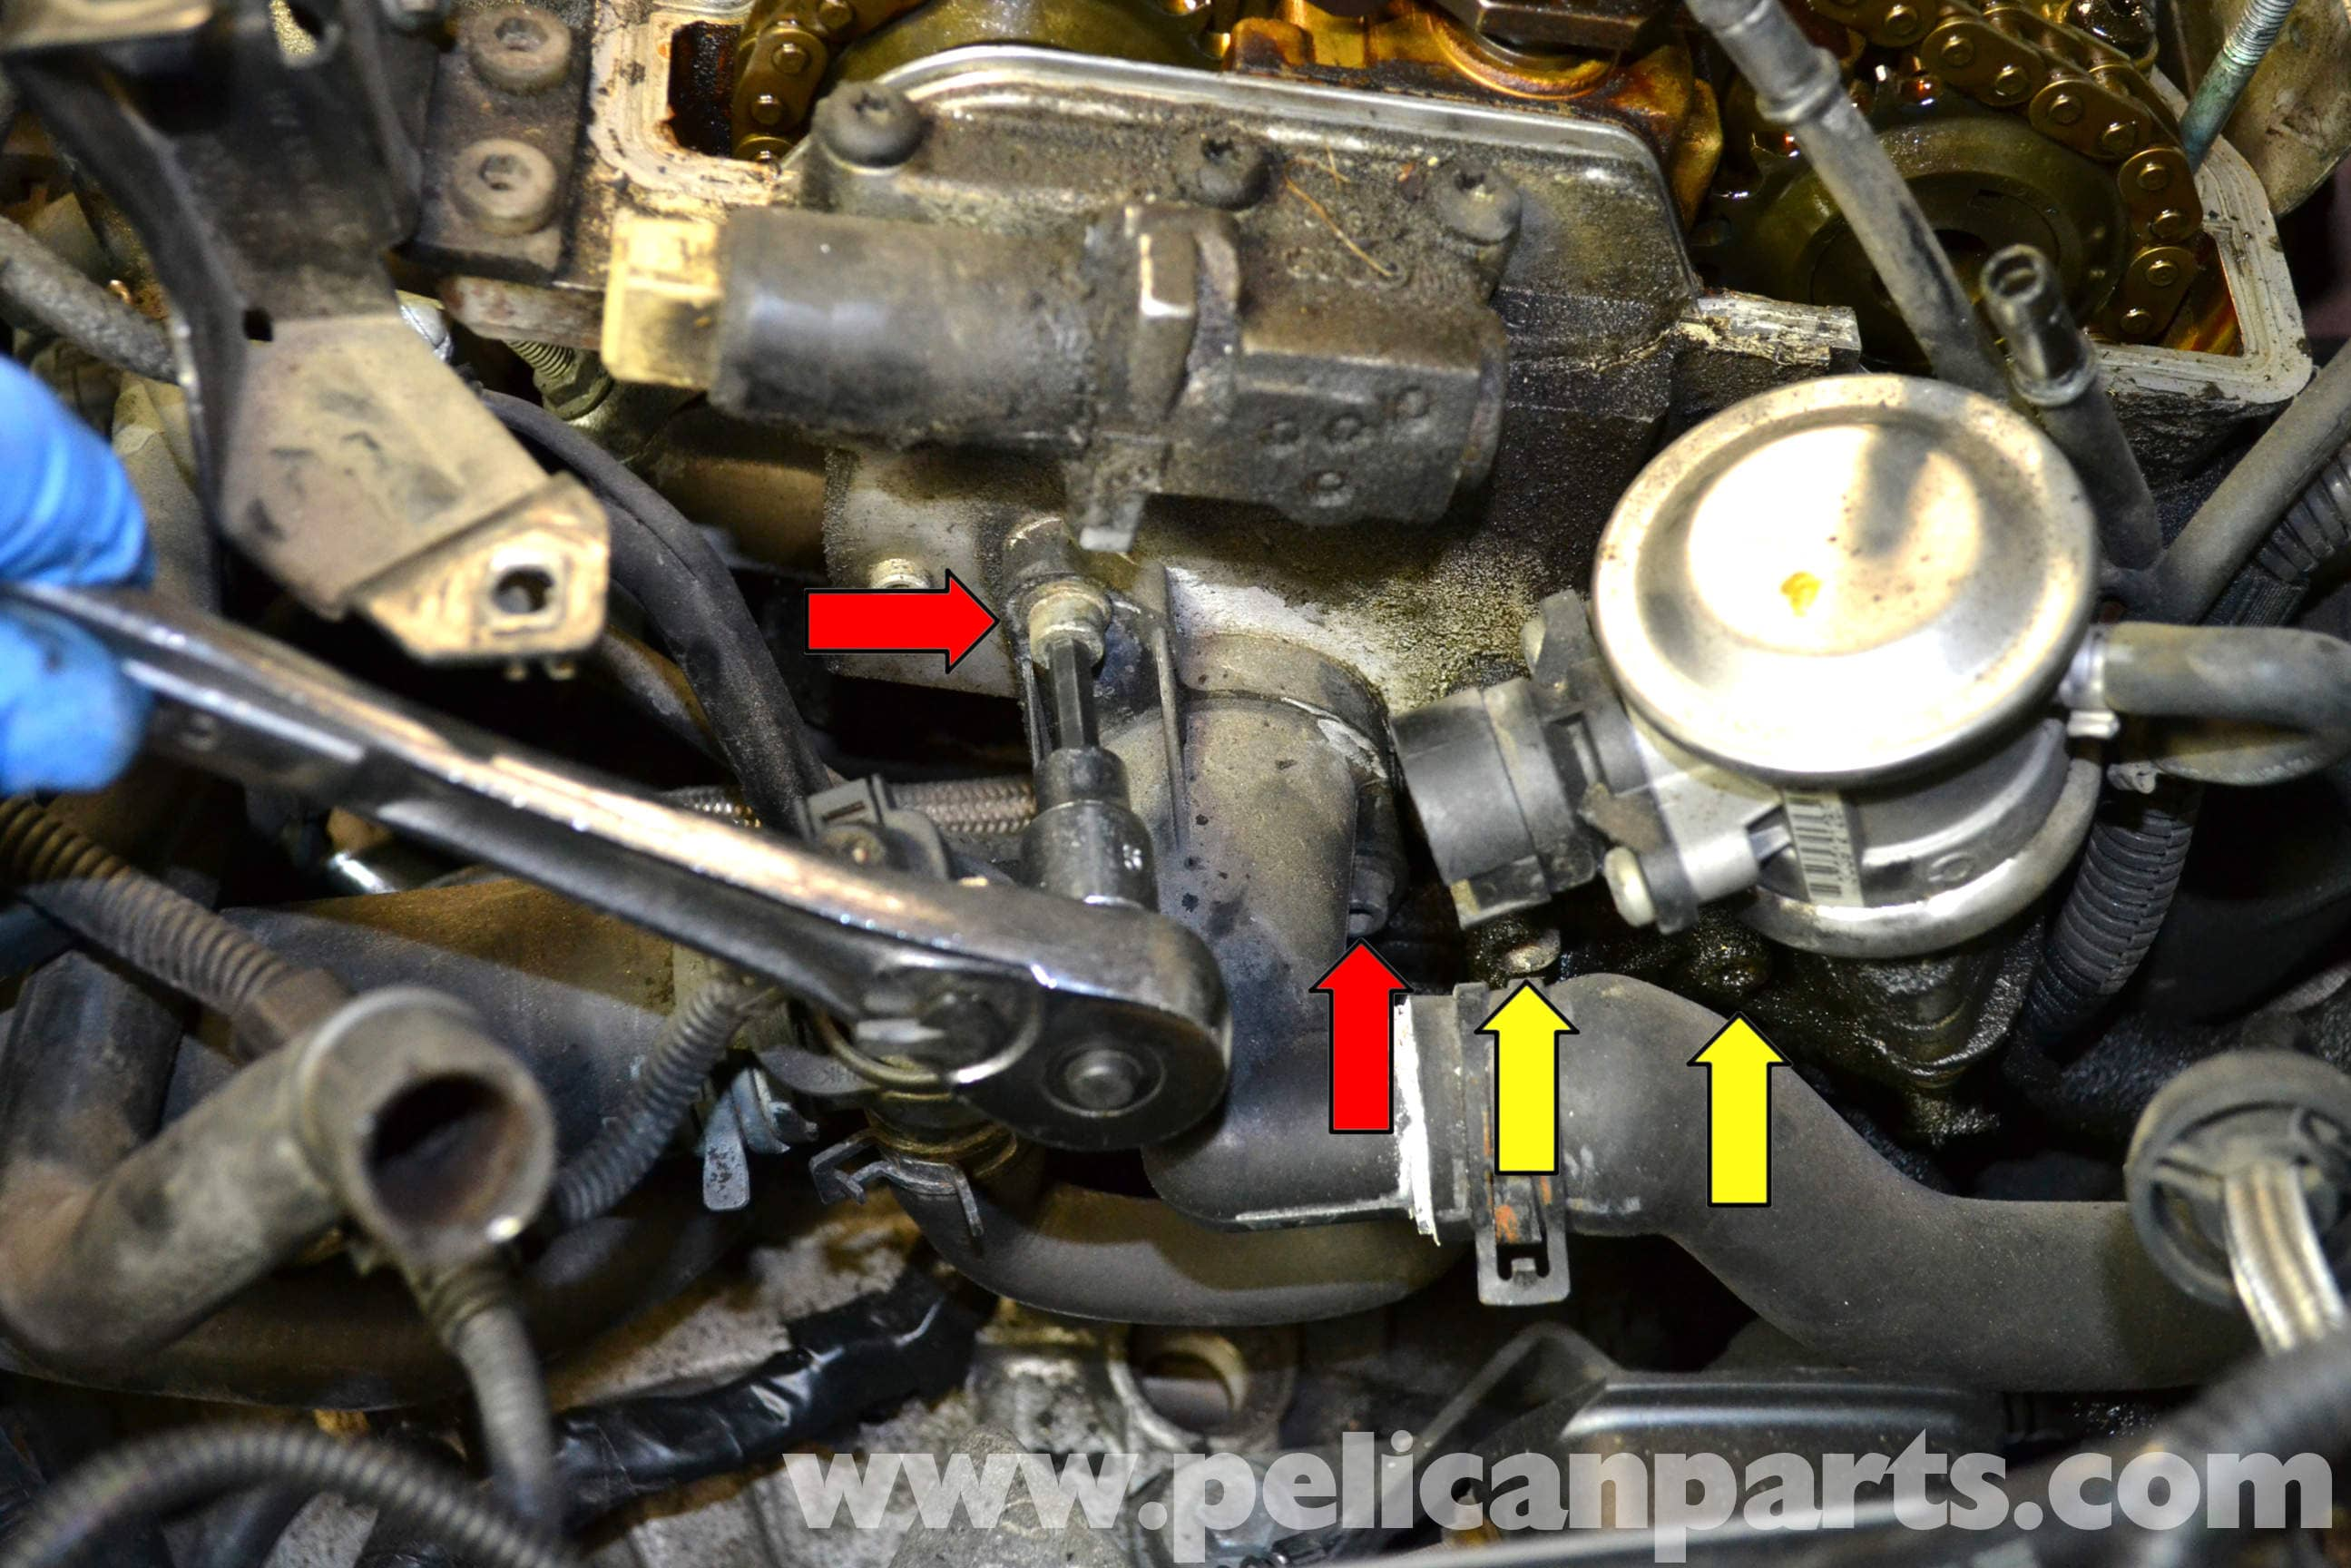 Volkswagen    Golf GTI Mk IV Head Gasket Replacement  19992005   Pelican Parts DIY Maintenance